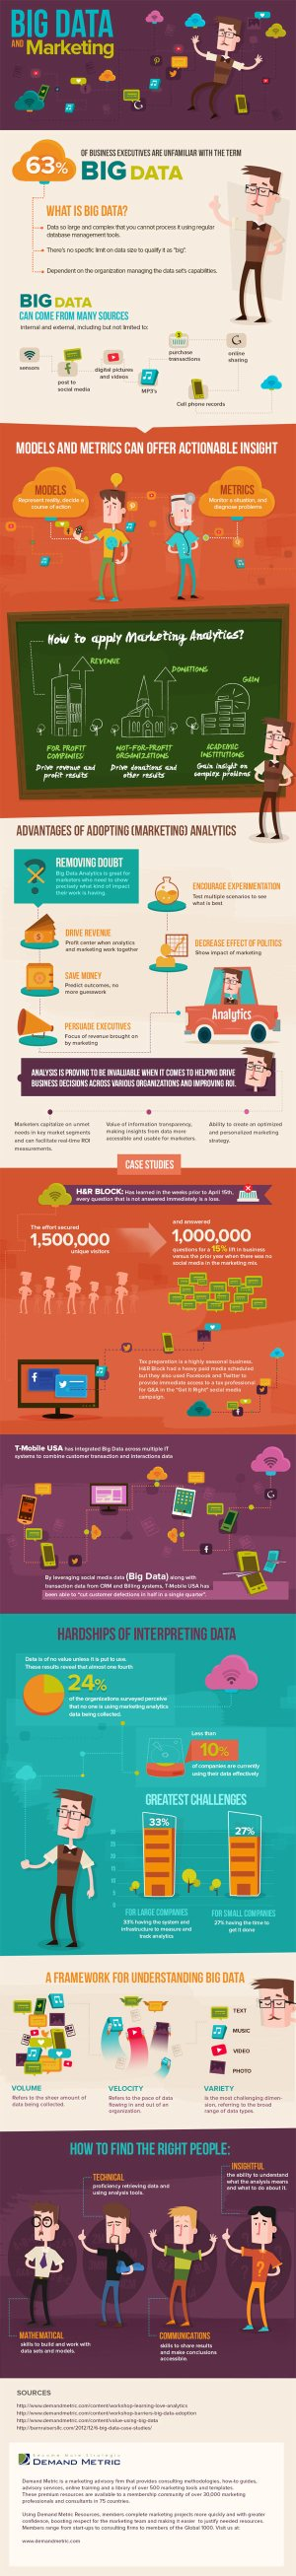 big-data-infographic-2